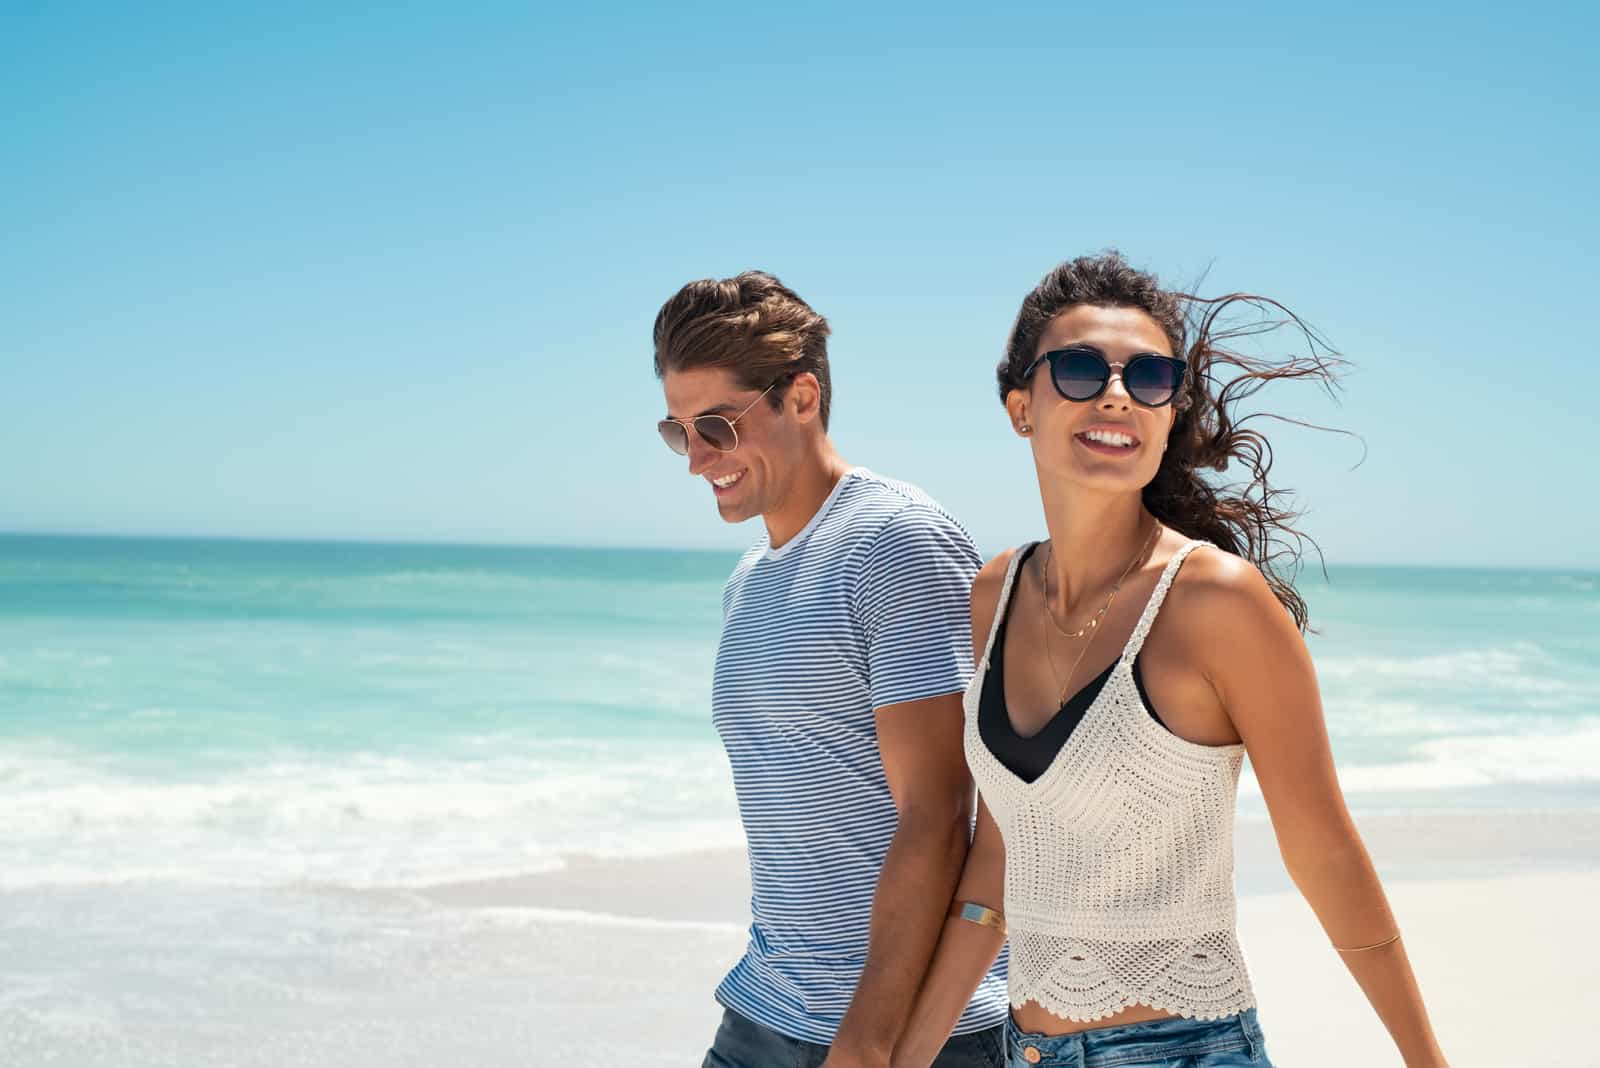 a smiling man and woman walk the beach